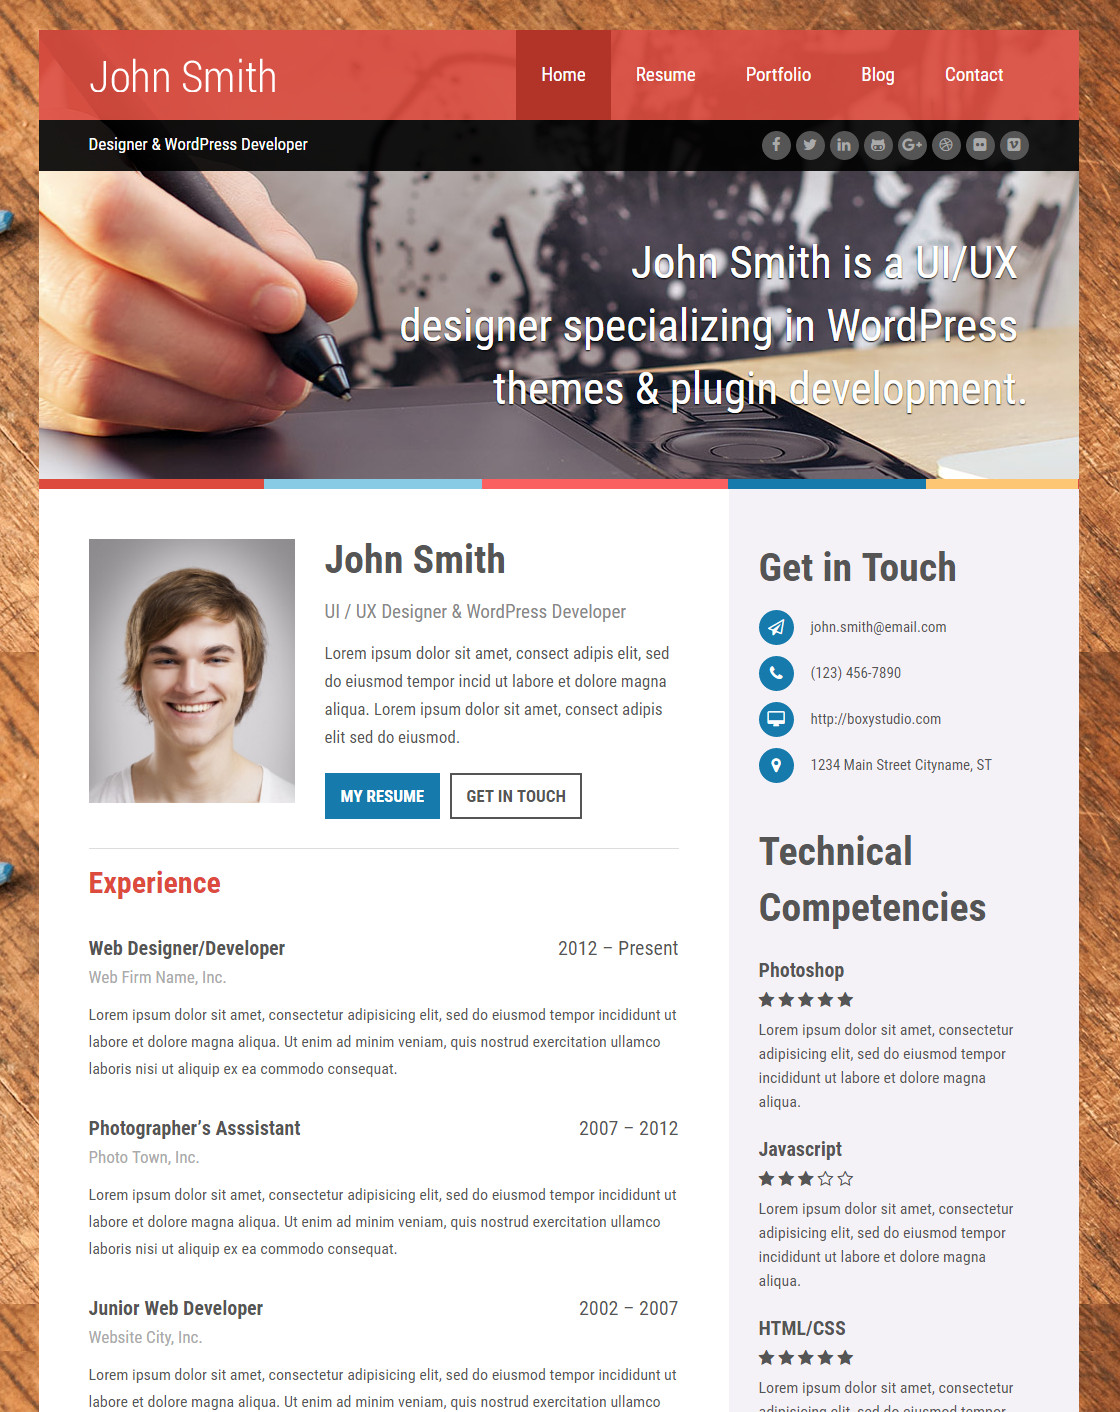 self a powerful vcard theme wresume builder. Resume Example. Resume CV Cover Letter